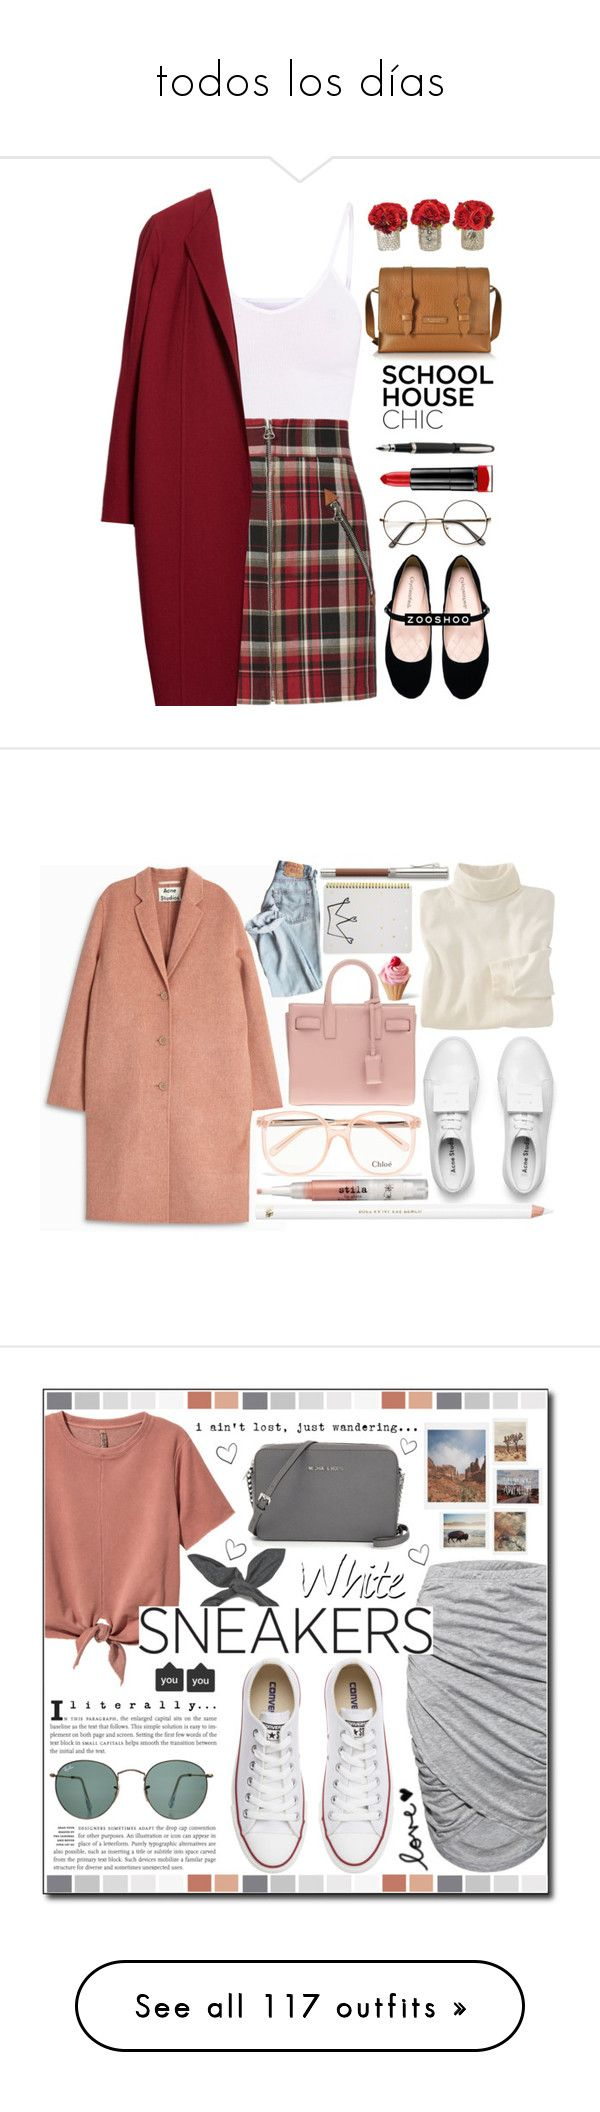 """todos los días"" by roch-macarena ❤ liked on Polyvore featuring BasicGrey, rag & bone, City Classified, The Bridge, The French Bee, Max Factor, Lafayette 148 New York, Sugar Paper, Acne Studios and Chloé"